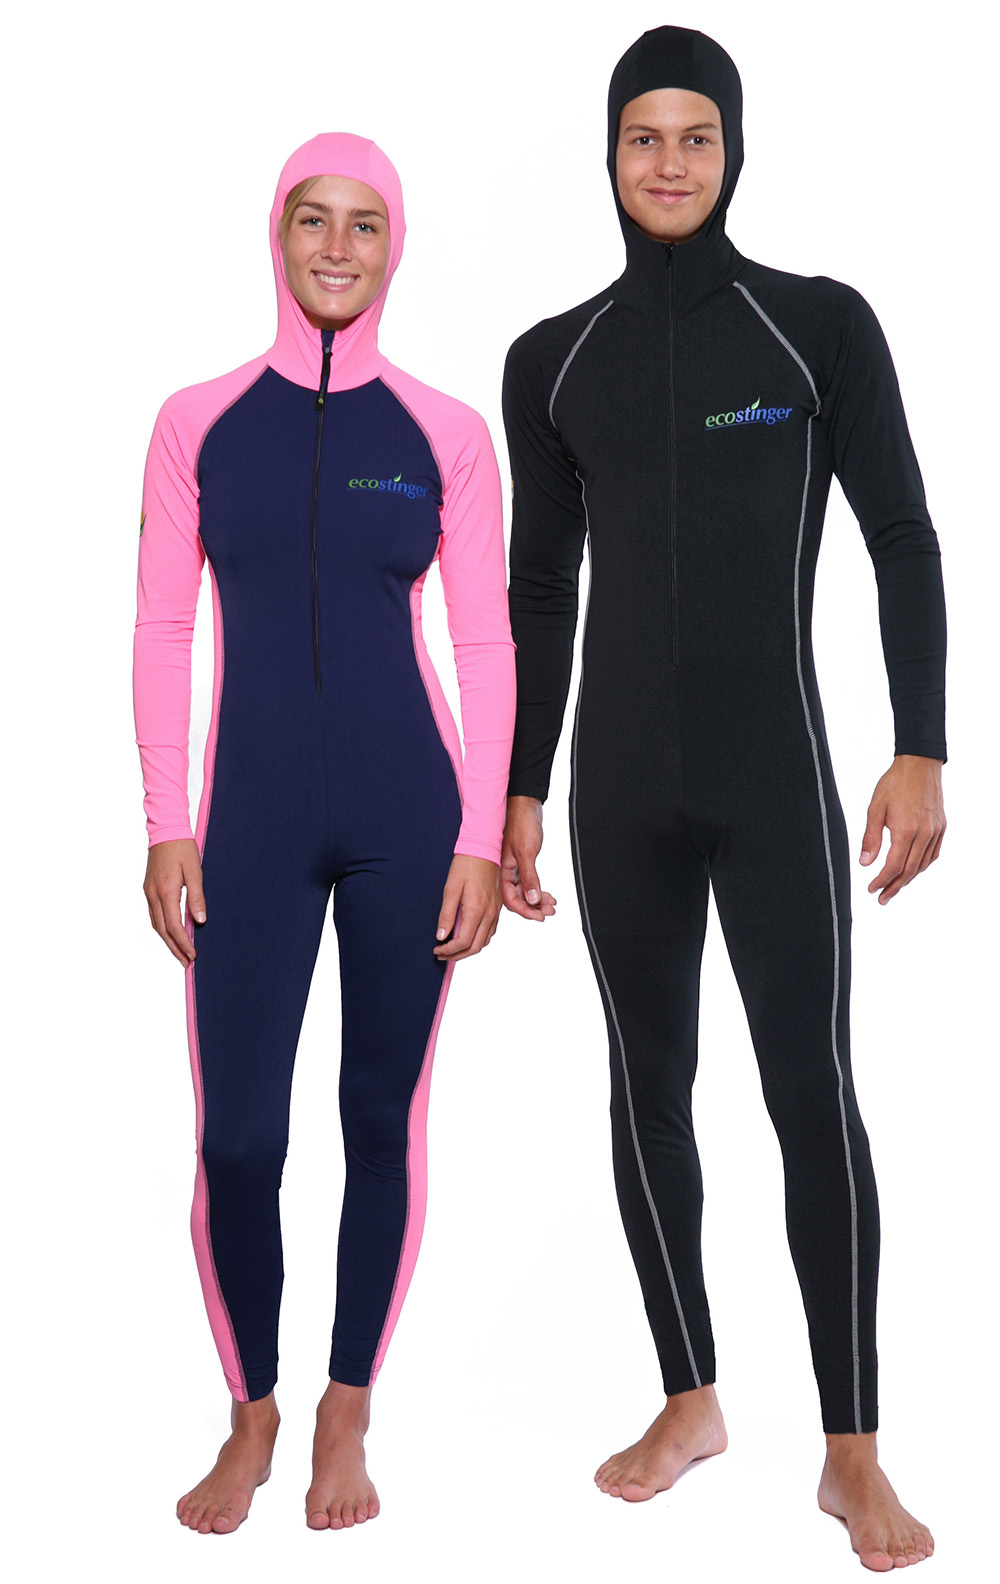 EcoStinger full body coverup swimsuits stinger suits dive skins